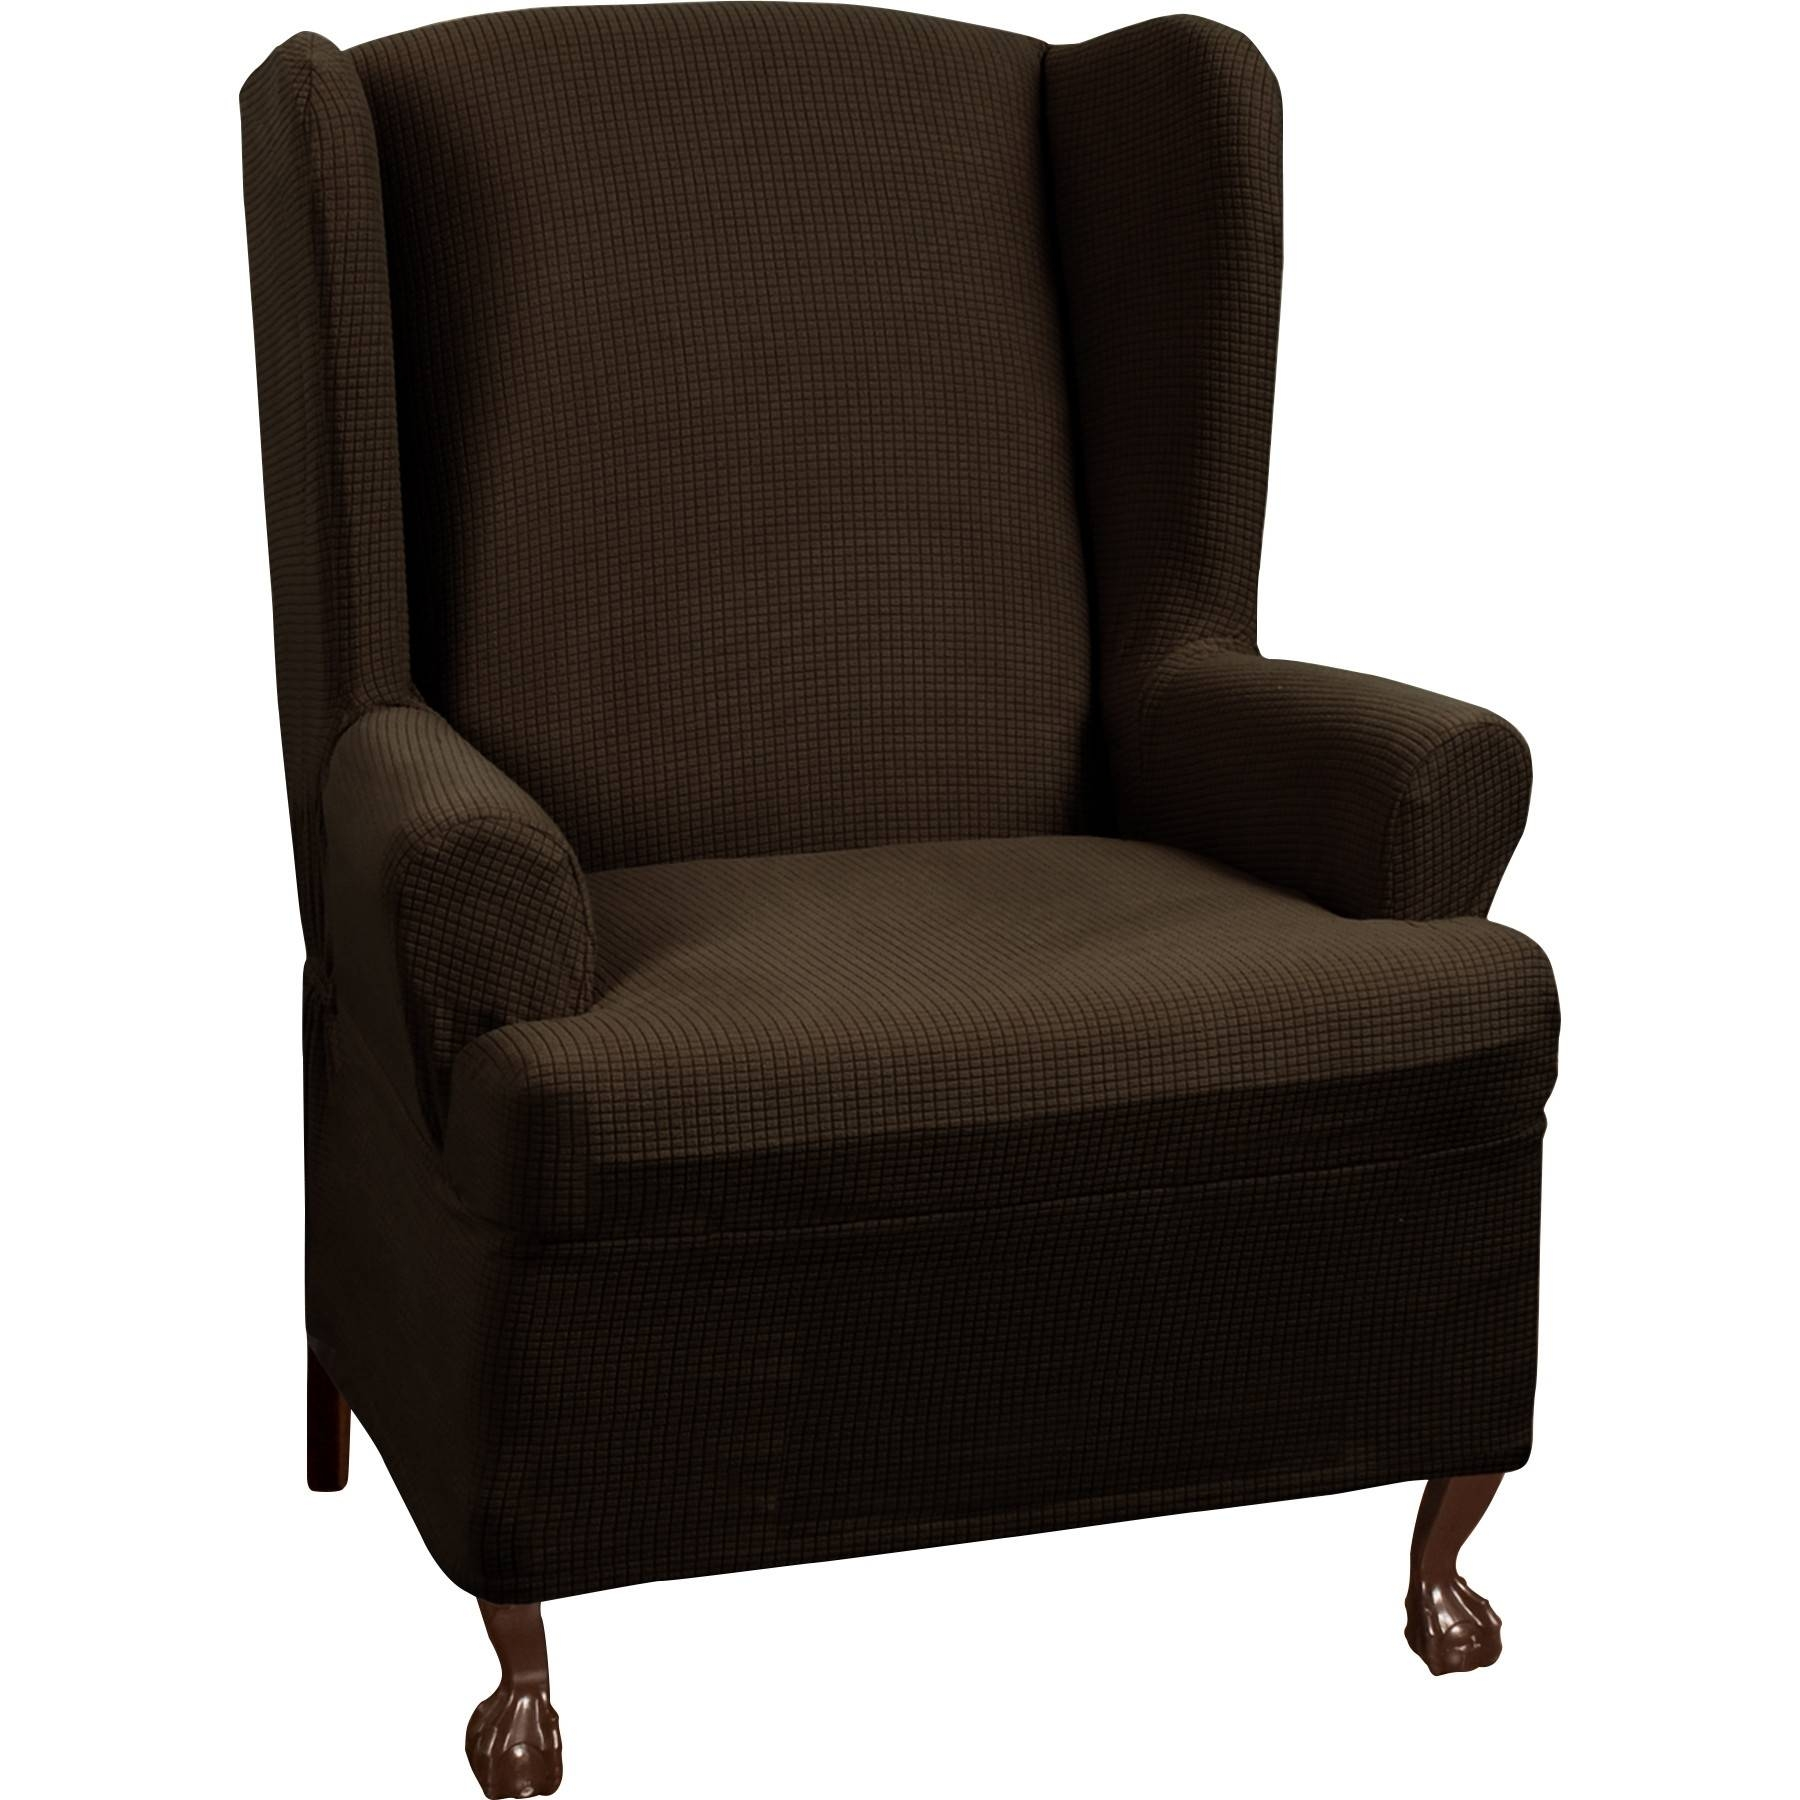 Furniture: Cheap Slipcovers | Armless Chair Slipcover | Recliner intended for Armless Slipcovers (Image 12 of 15)